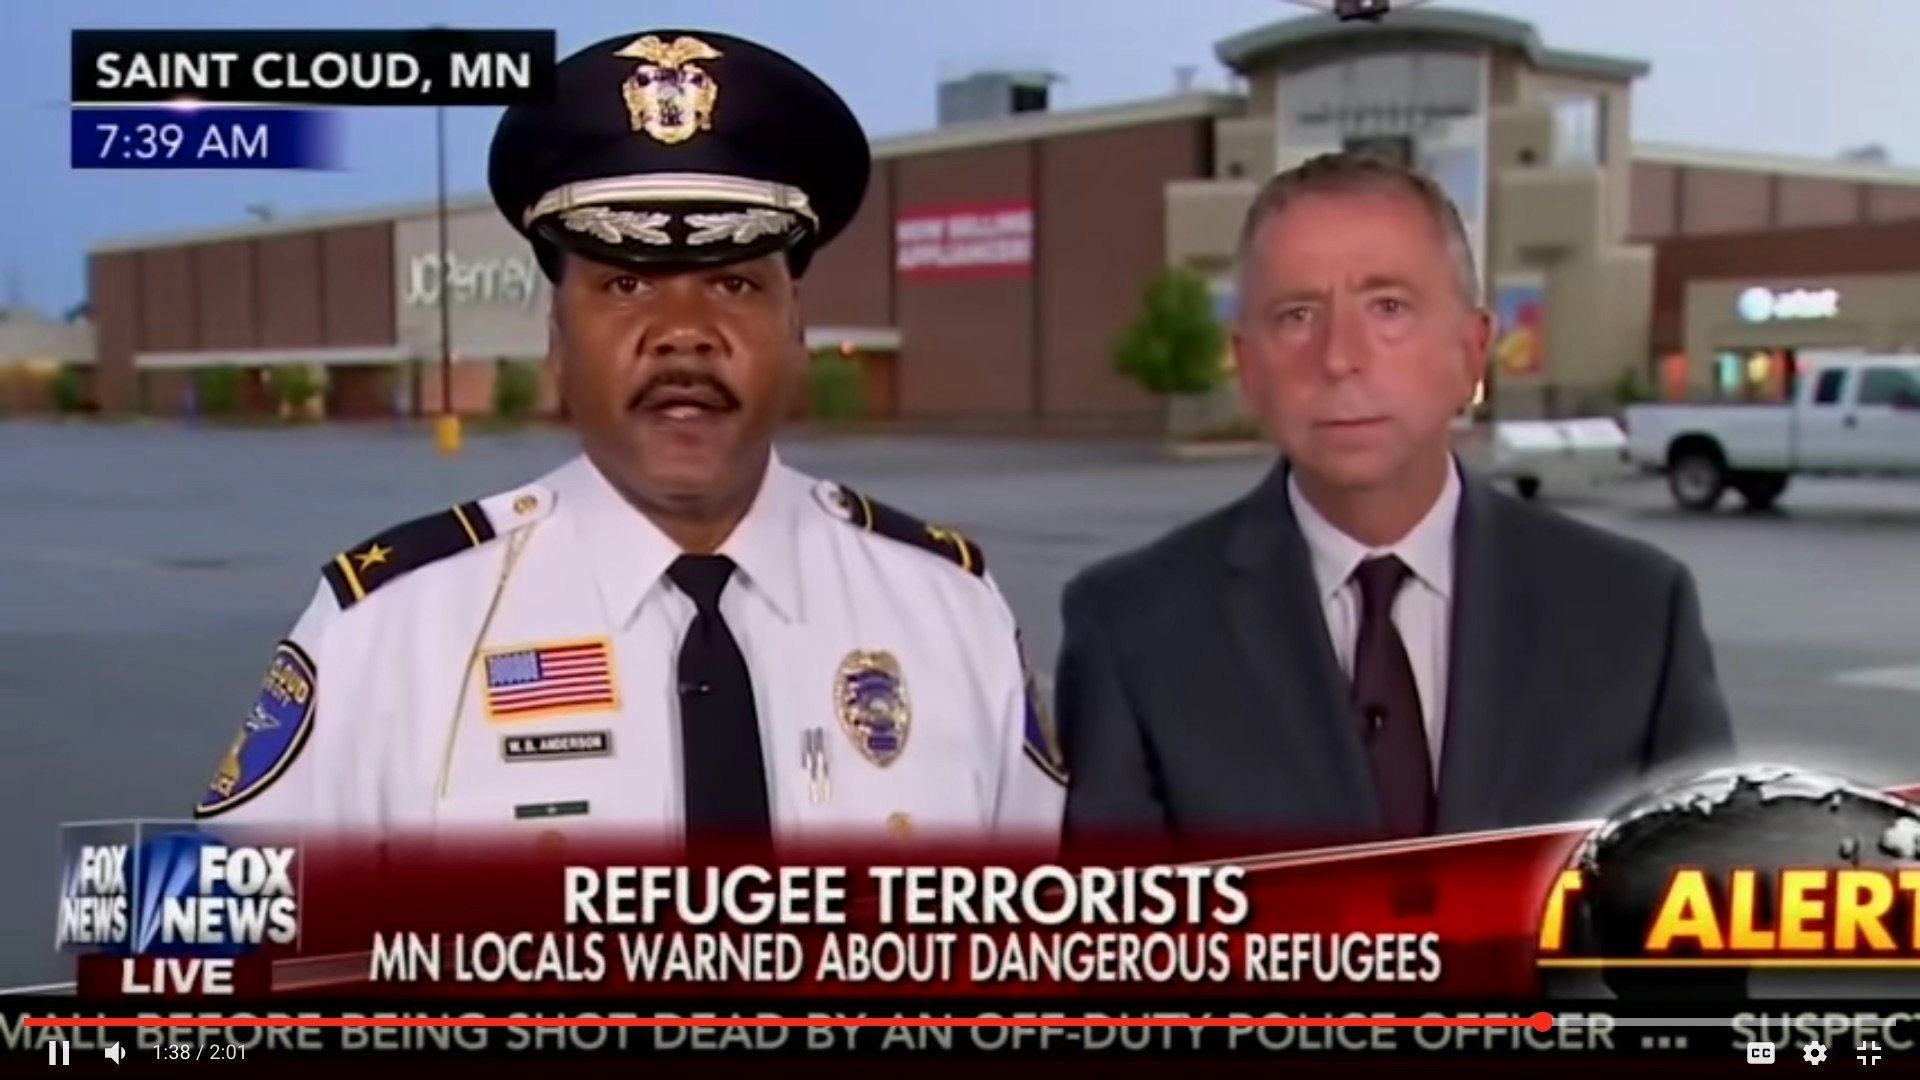 Police Chief Shuts Down Fox News Hosts On Live